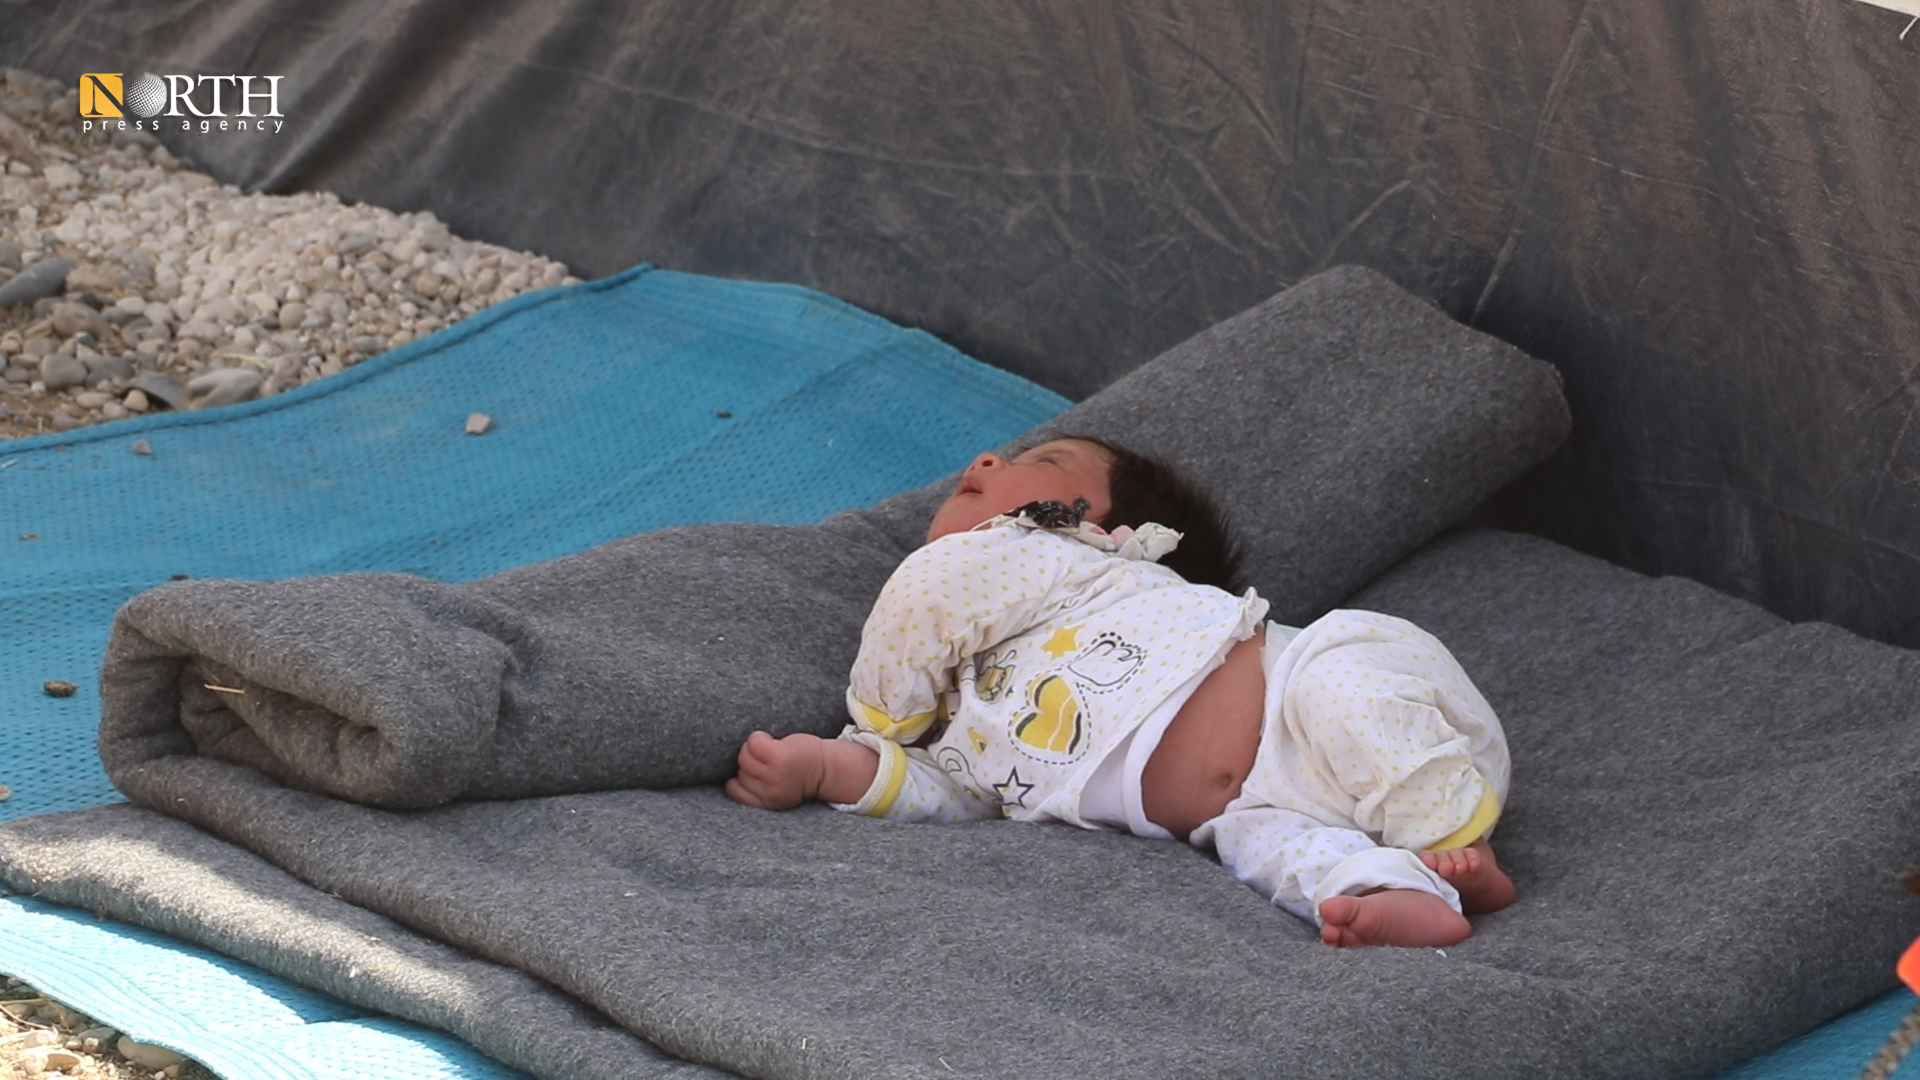 A five-day-old infant displaced from Tel Tamr due to the Turkish bombing of his village north of Hasakah – North Press